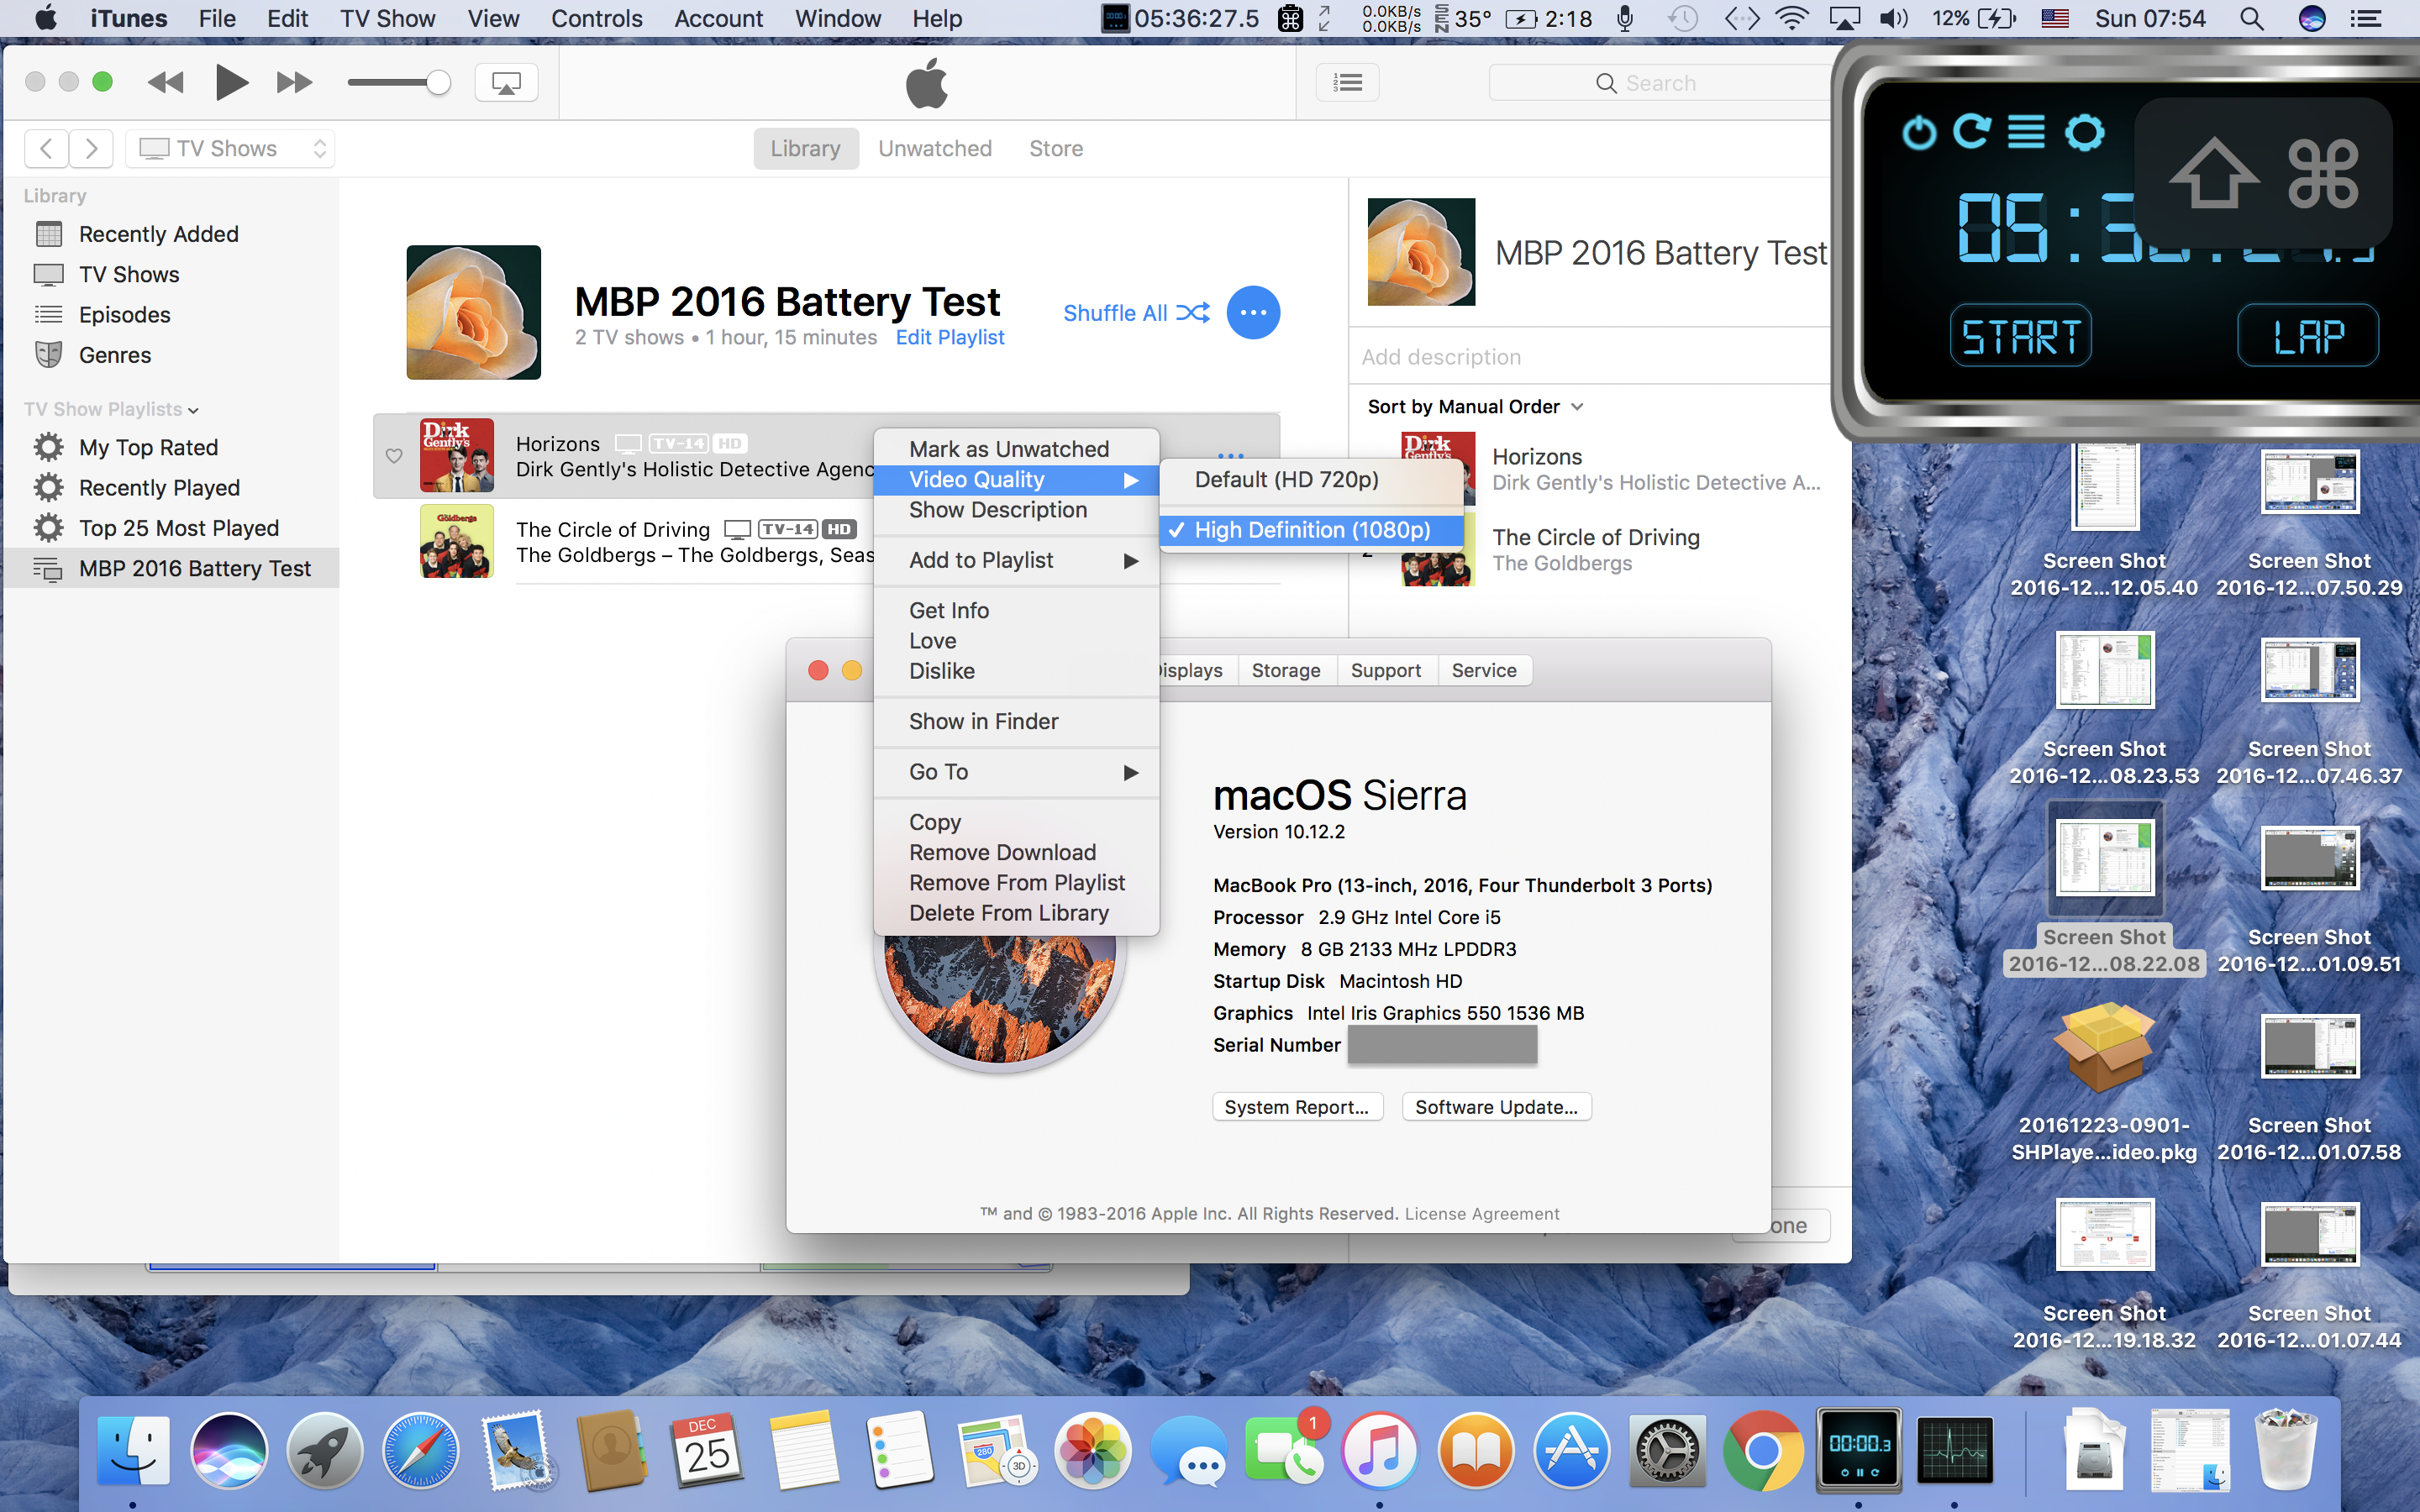 Screen Shot 2016-12-25 at 07.54.05-mbp tb battery test result-1080p.png